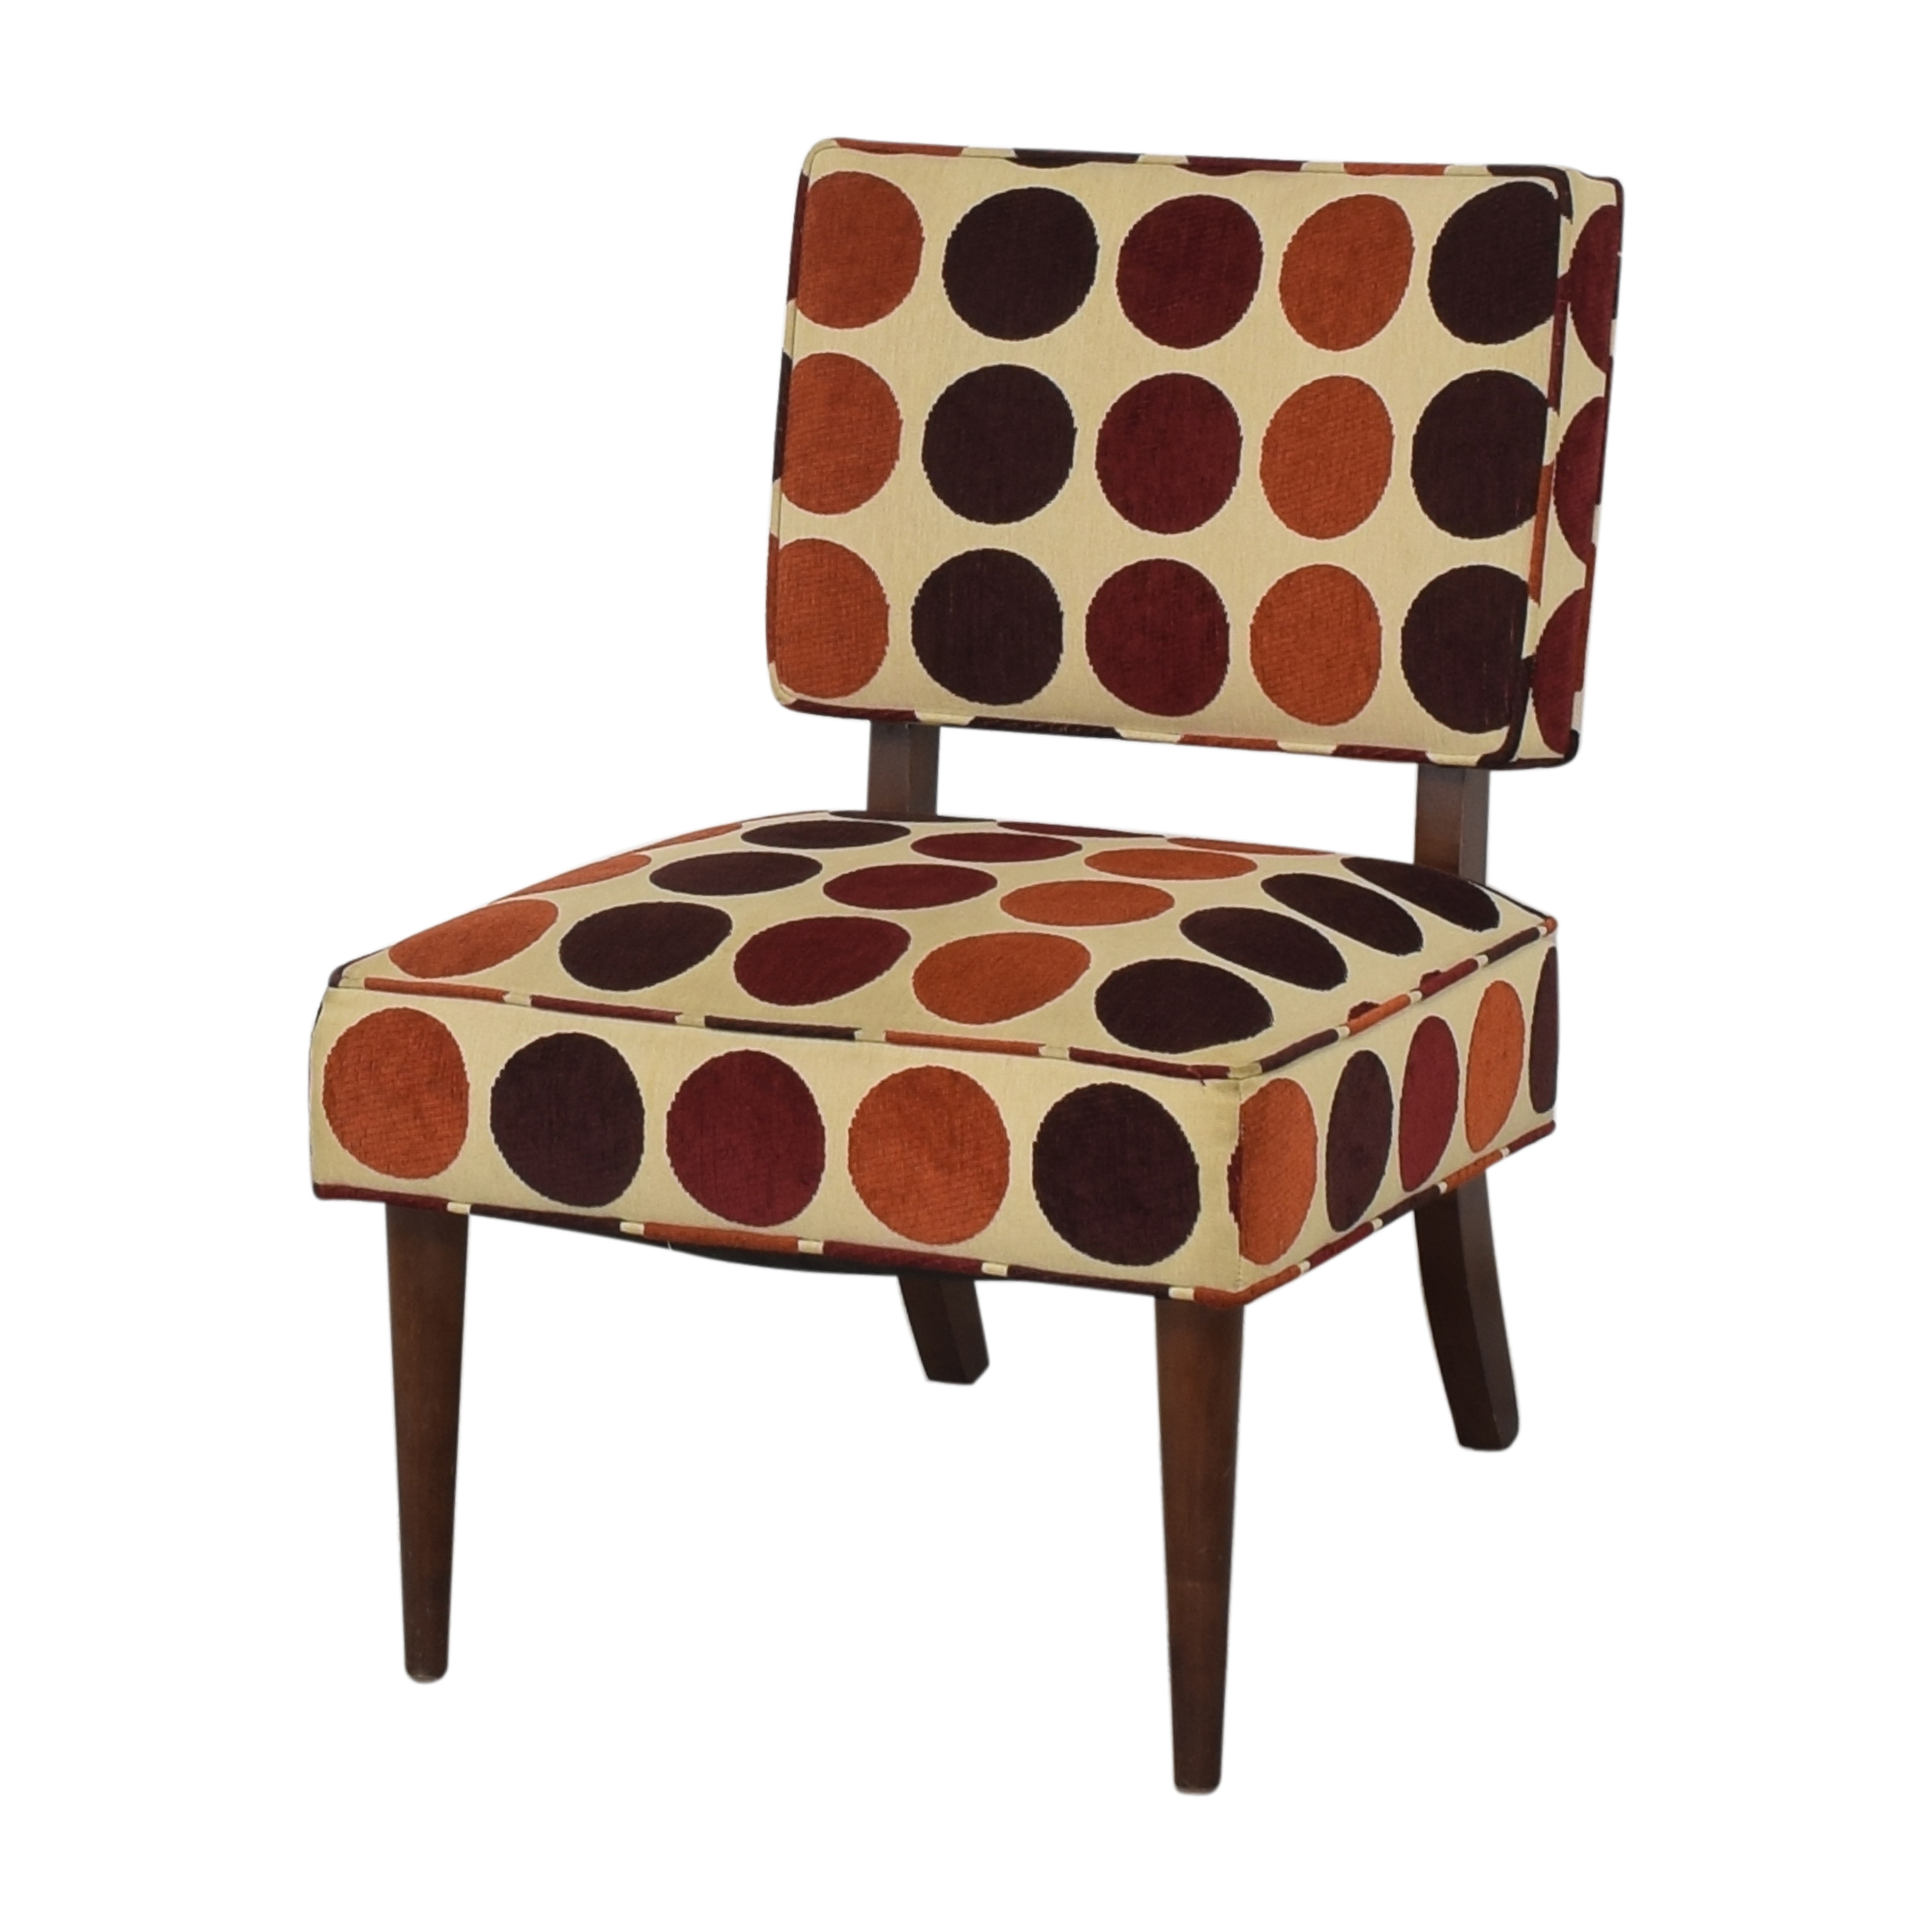 Room & Board Dot Slipper Chair / Chairs